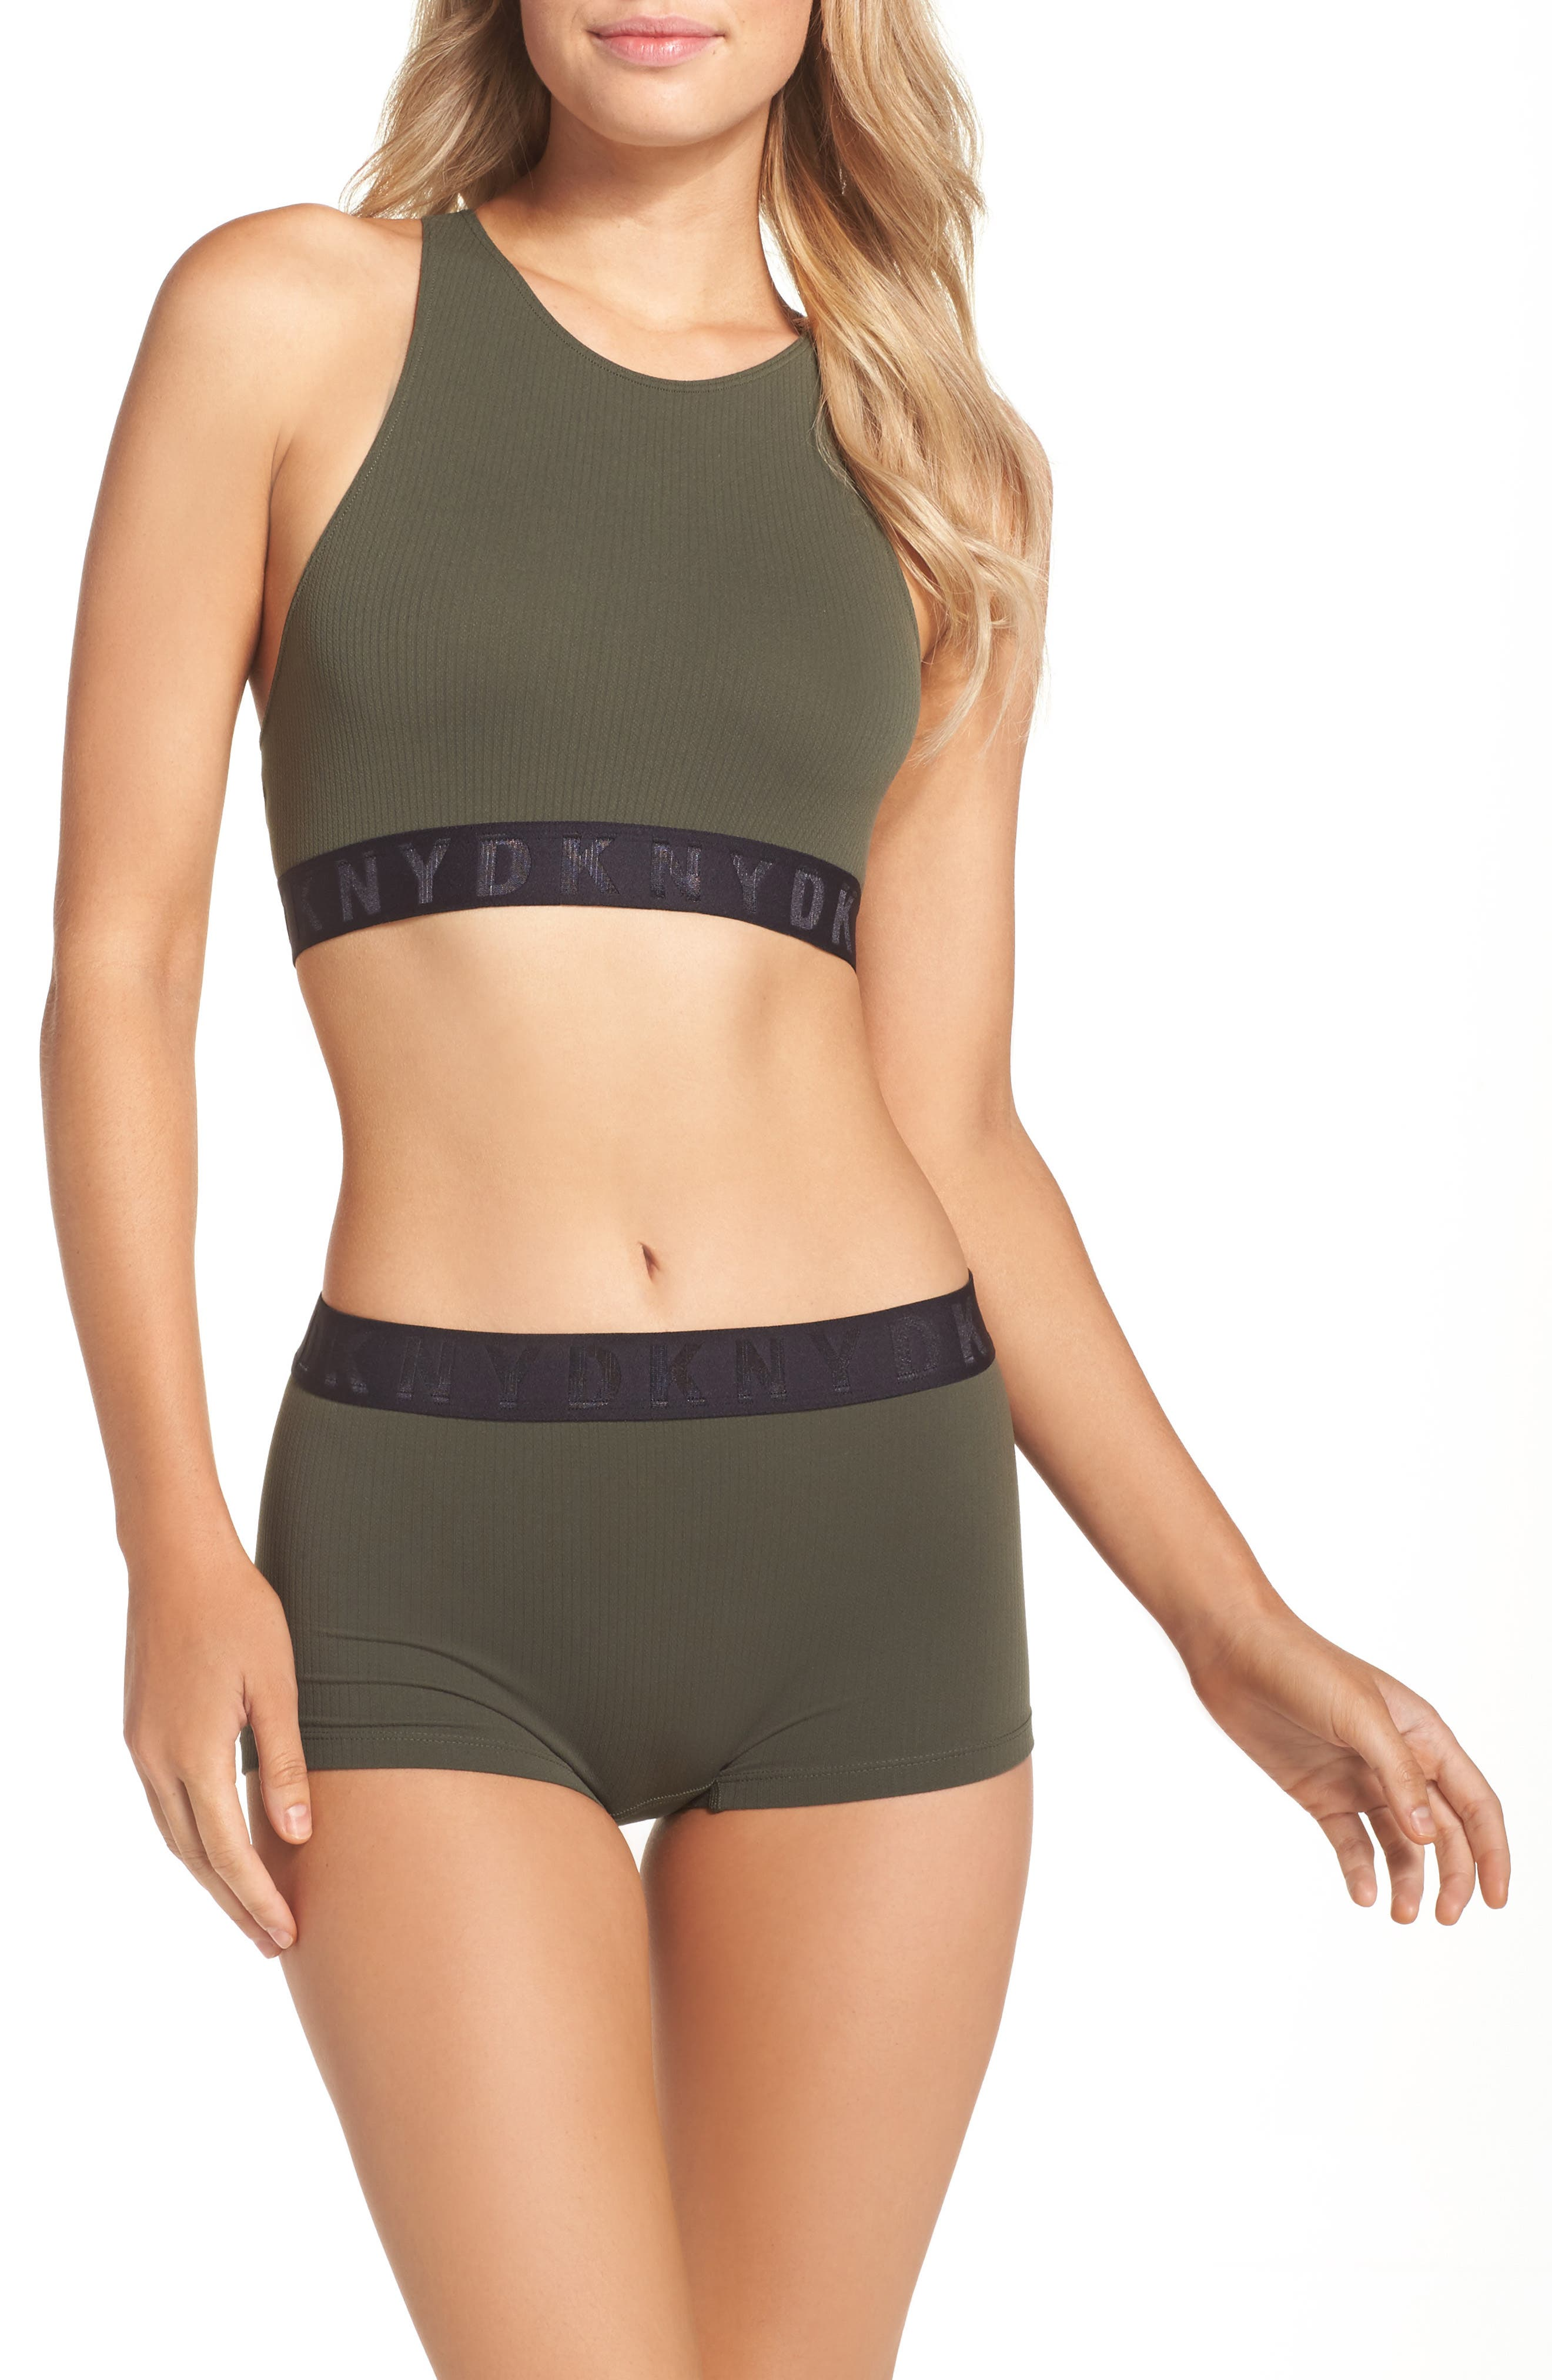 LiteWear Seamless Bralette,                             Alternate thumbnail 33, color,